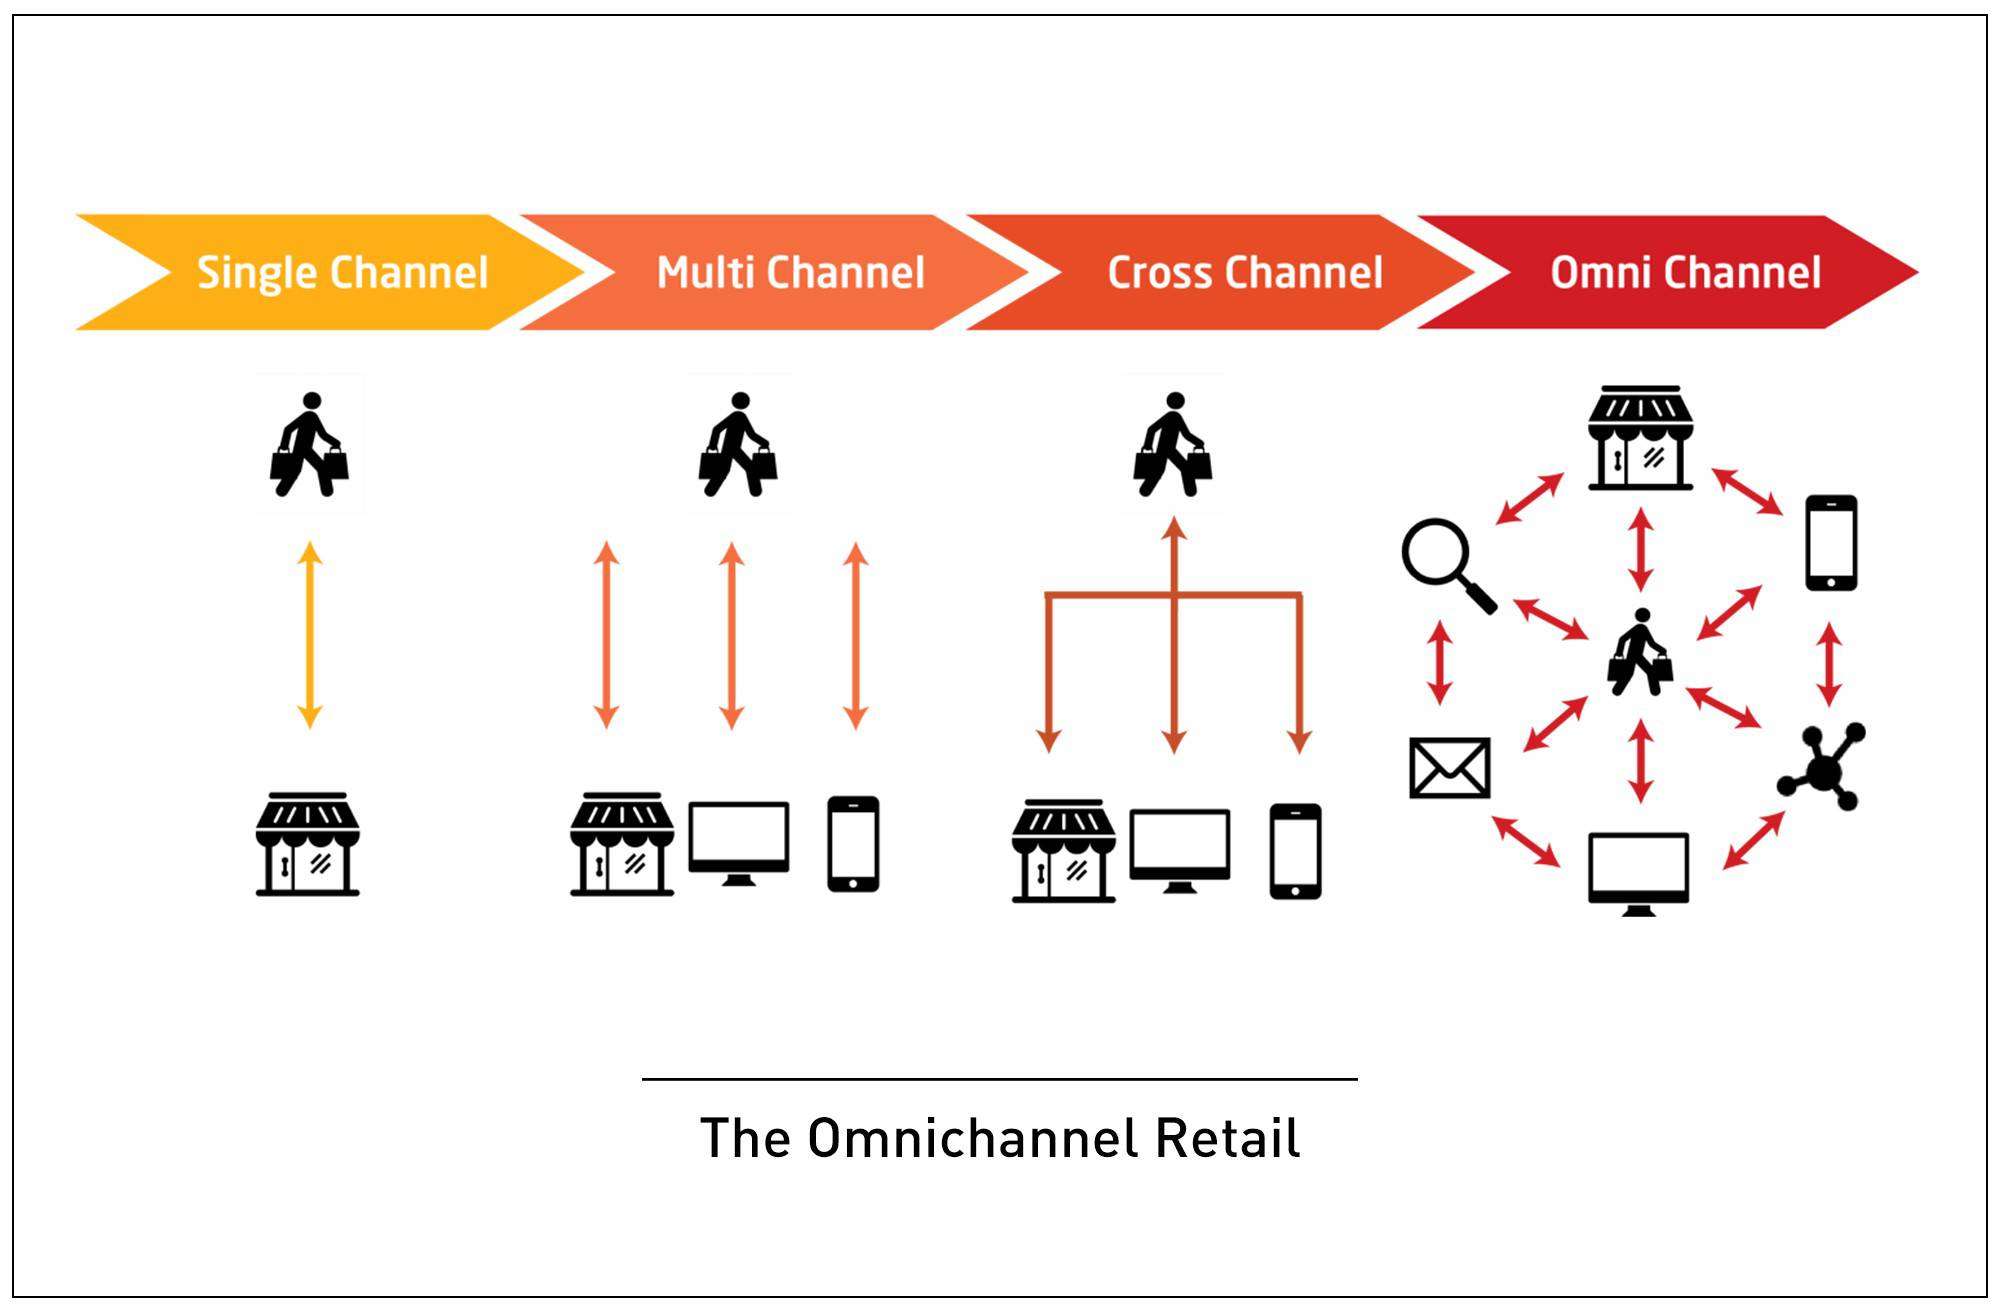 Four right arrows with people, stores, and computer icons visualizing the concept of the omnichannel retail